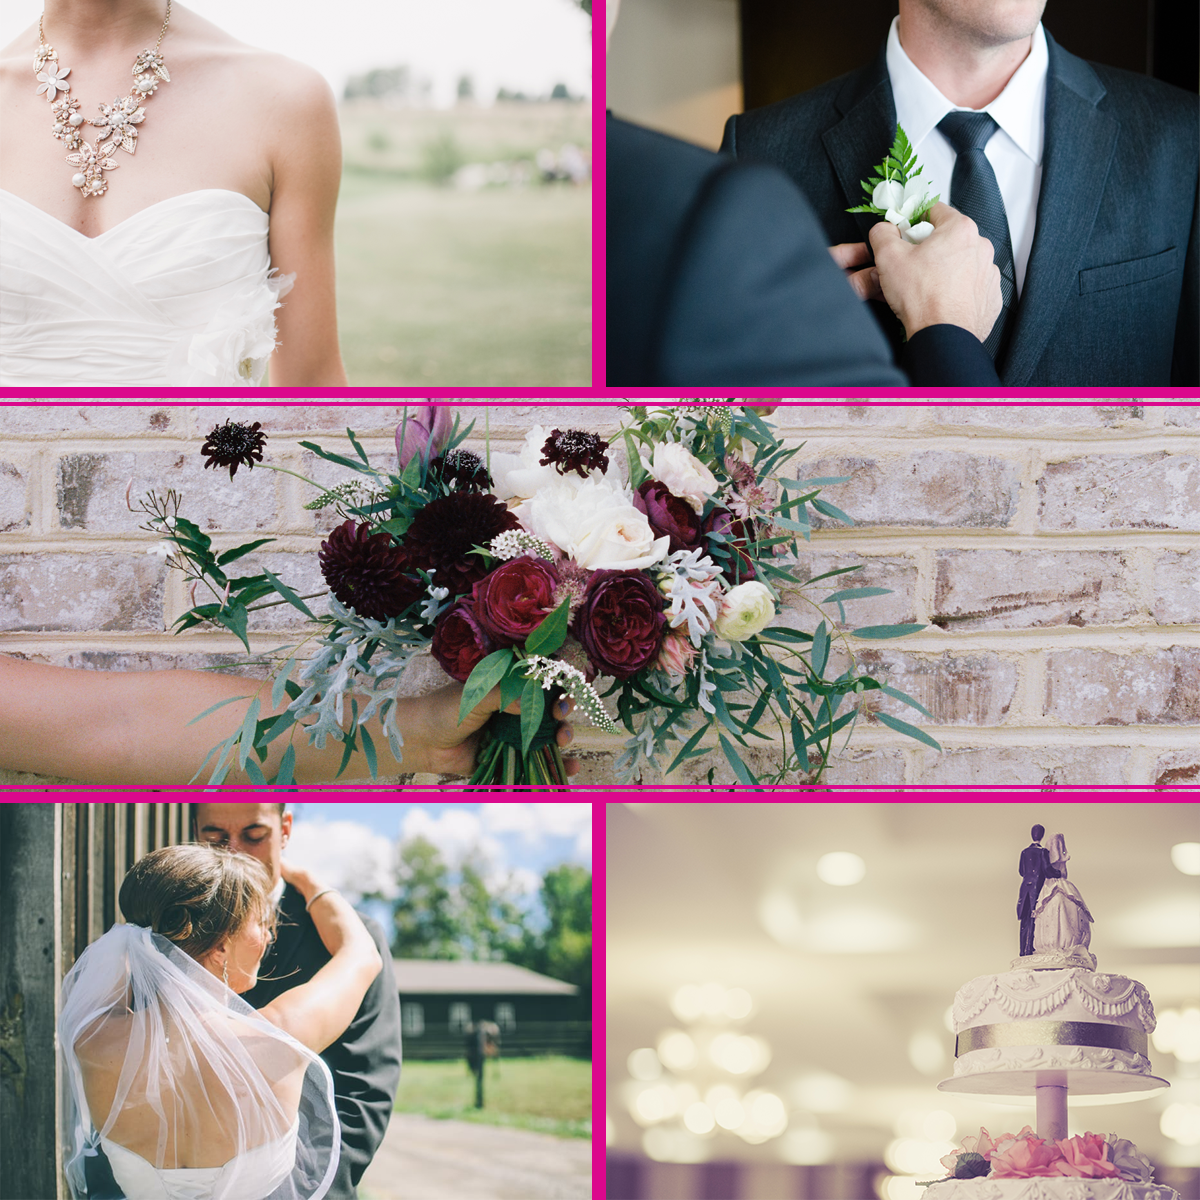 What does your dream wedding entail?